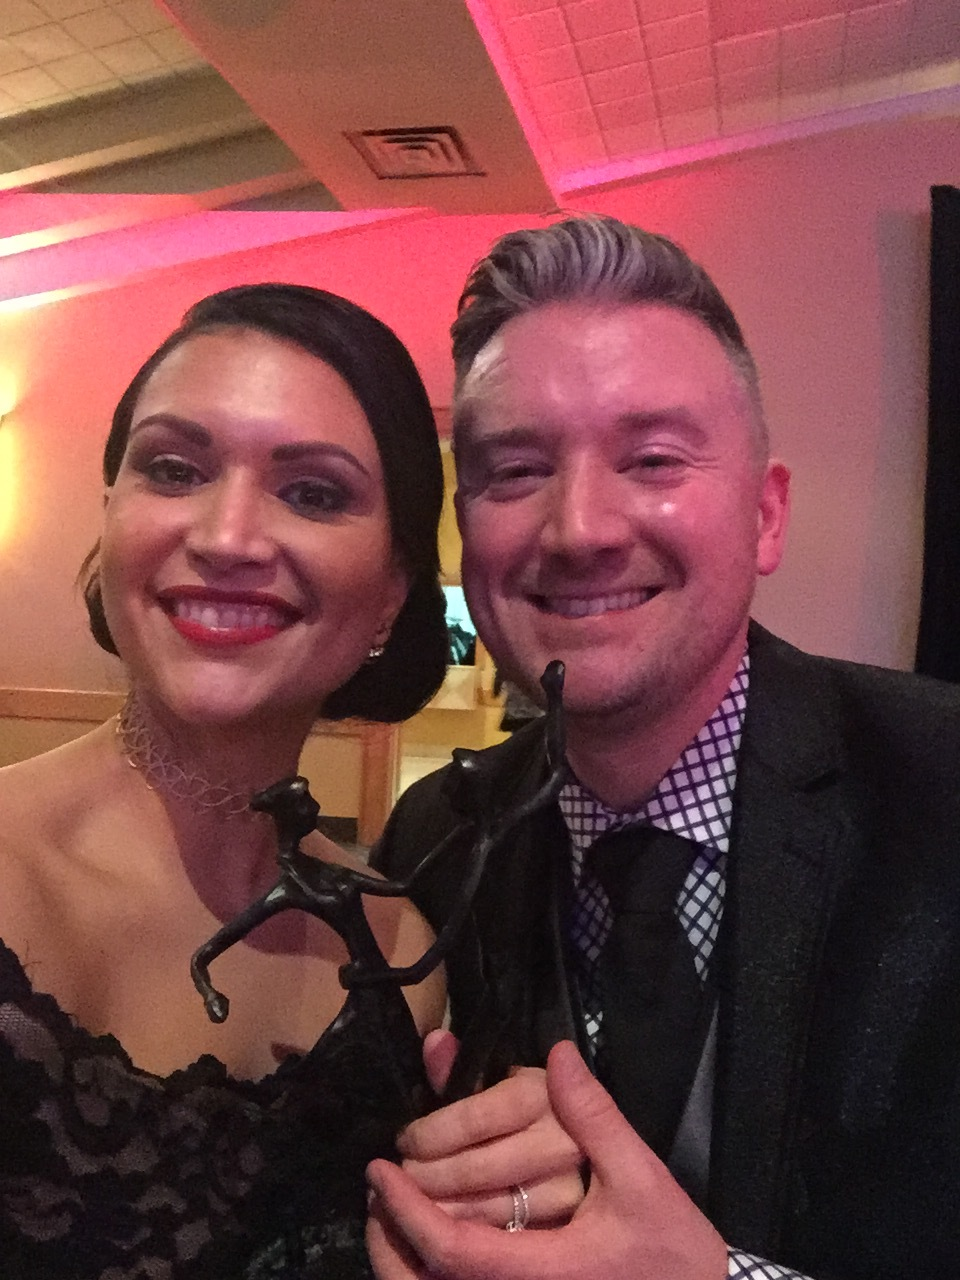 Carolina with her husband, Kyle Priestley, who is the lead for Corporate Event Management and DJing at The Event Firm.